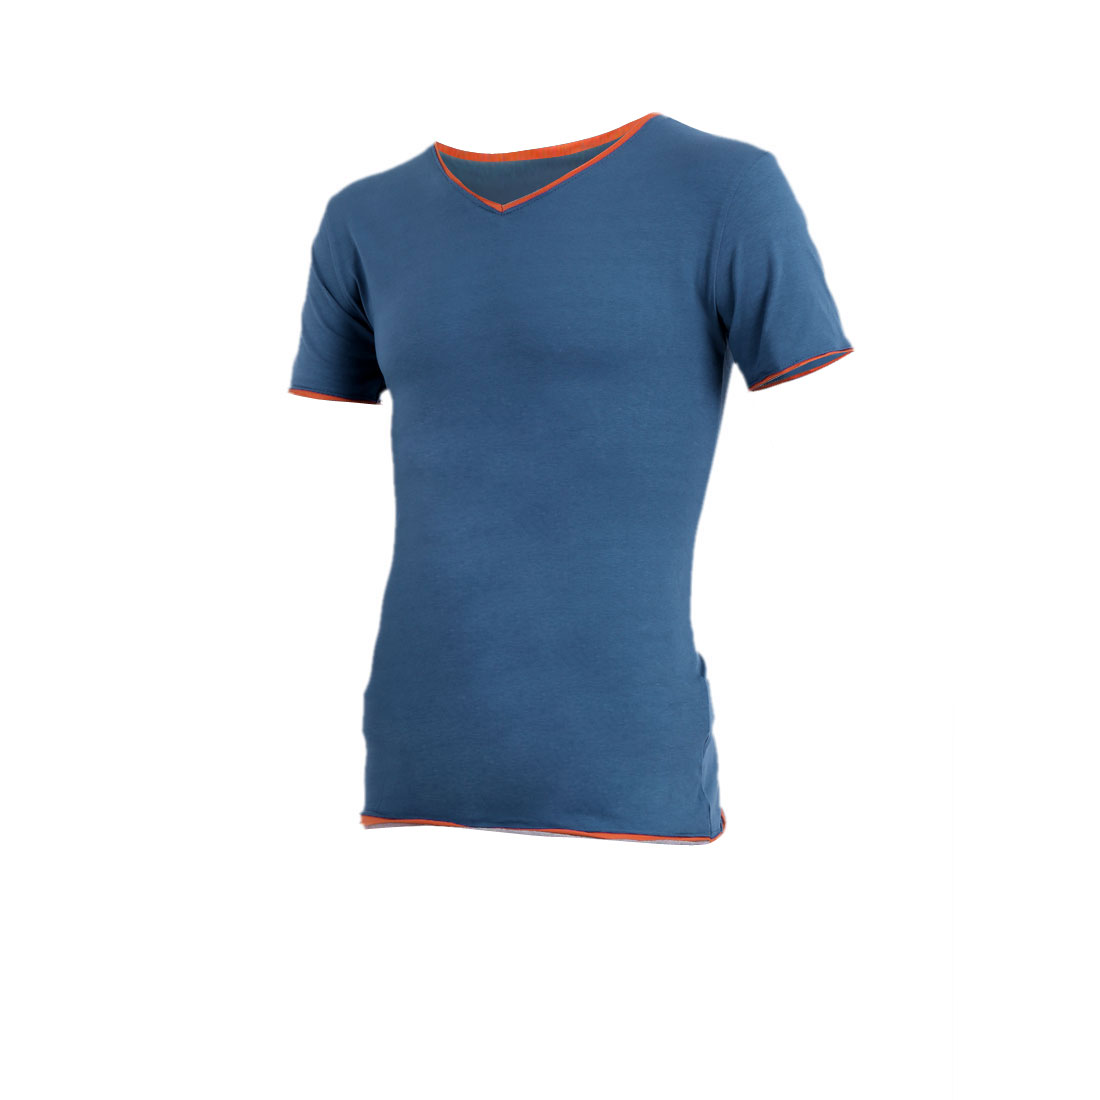 Men Stylish Elastic Splice Detail Indigo Blue Tee Shirt S